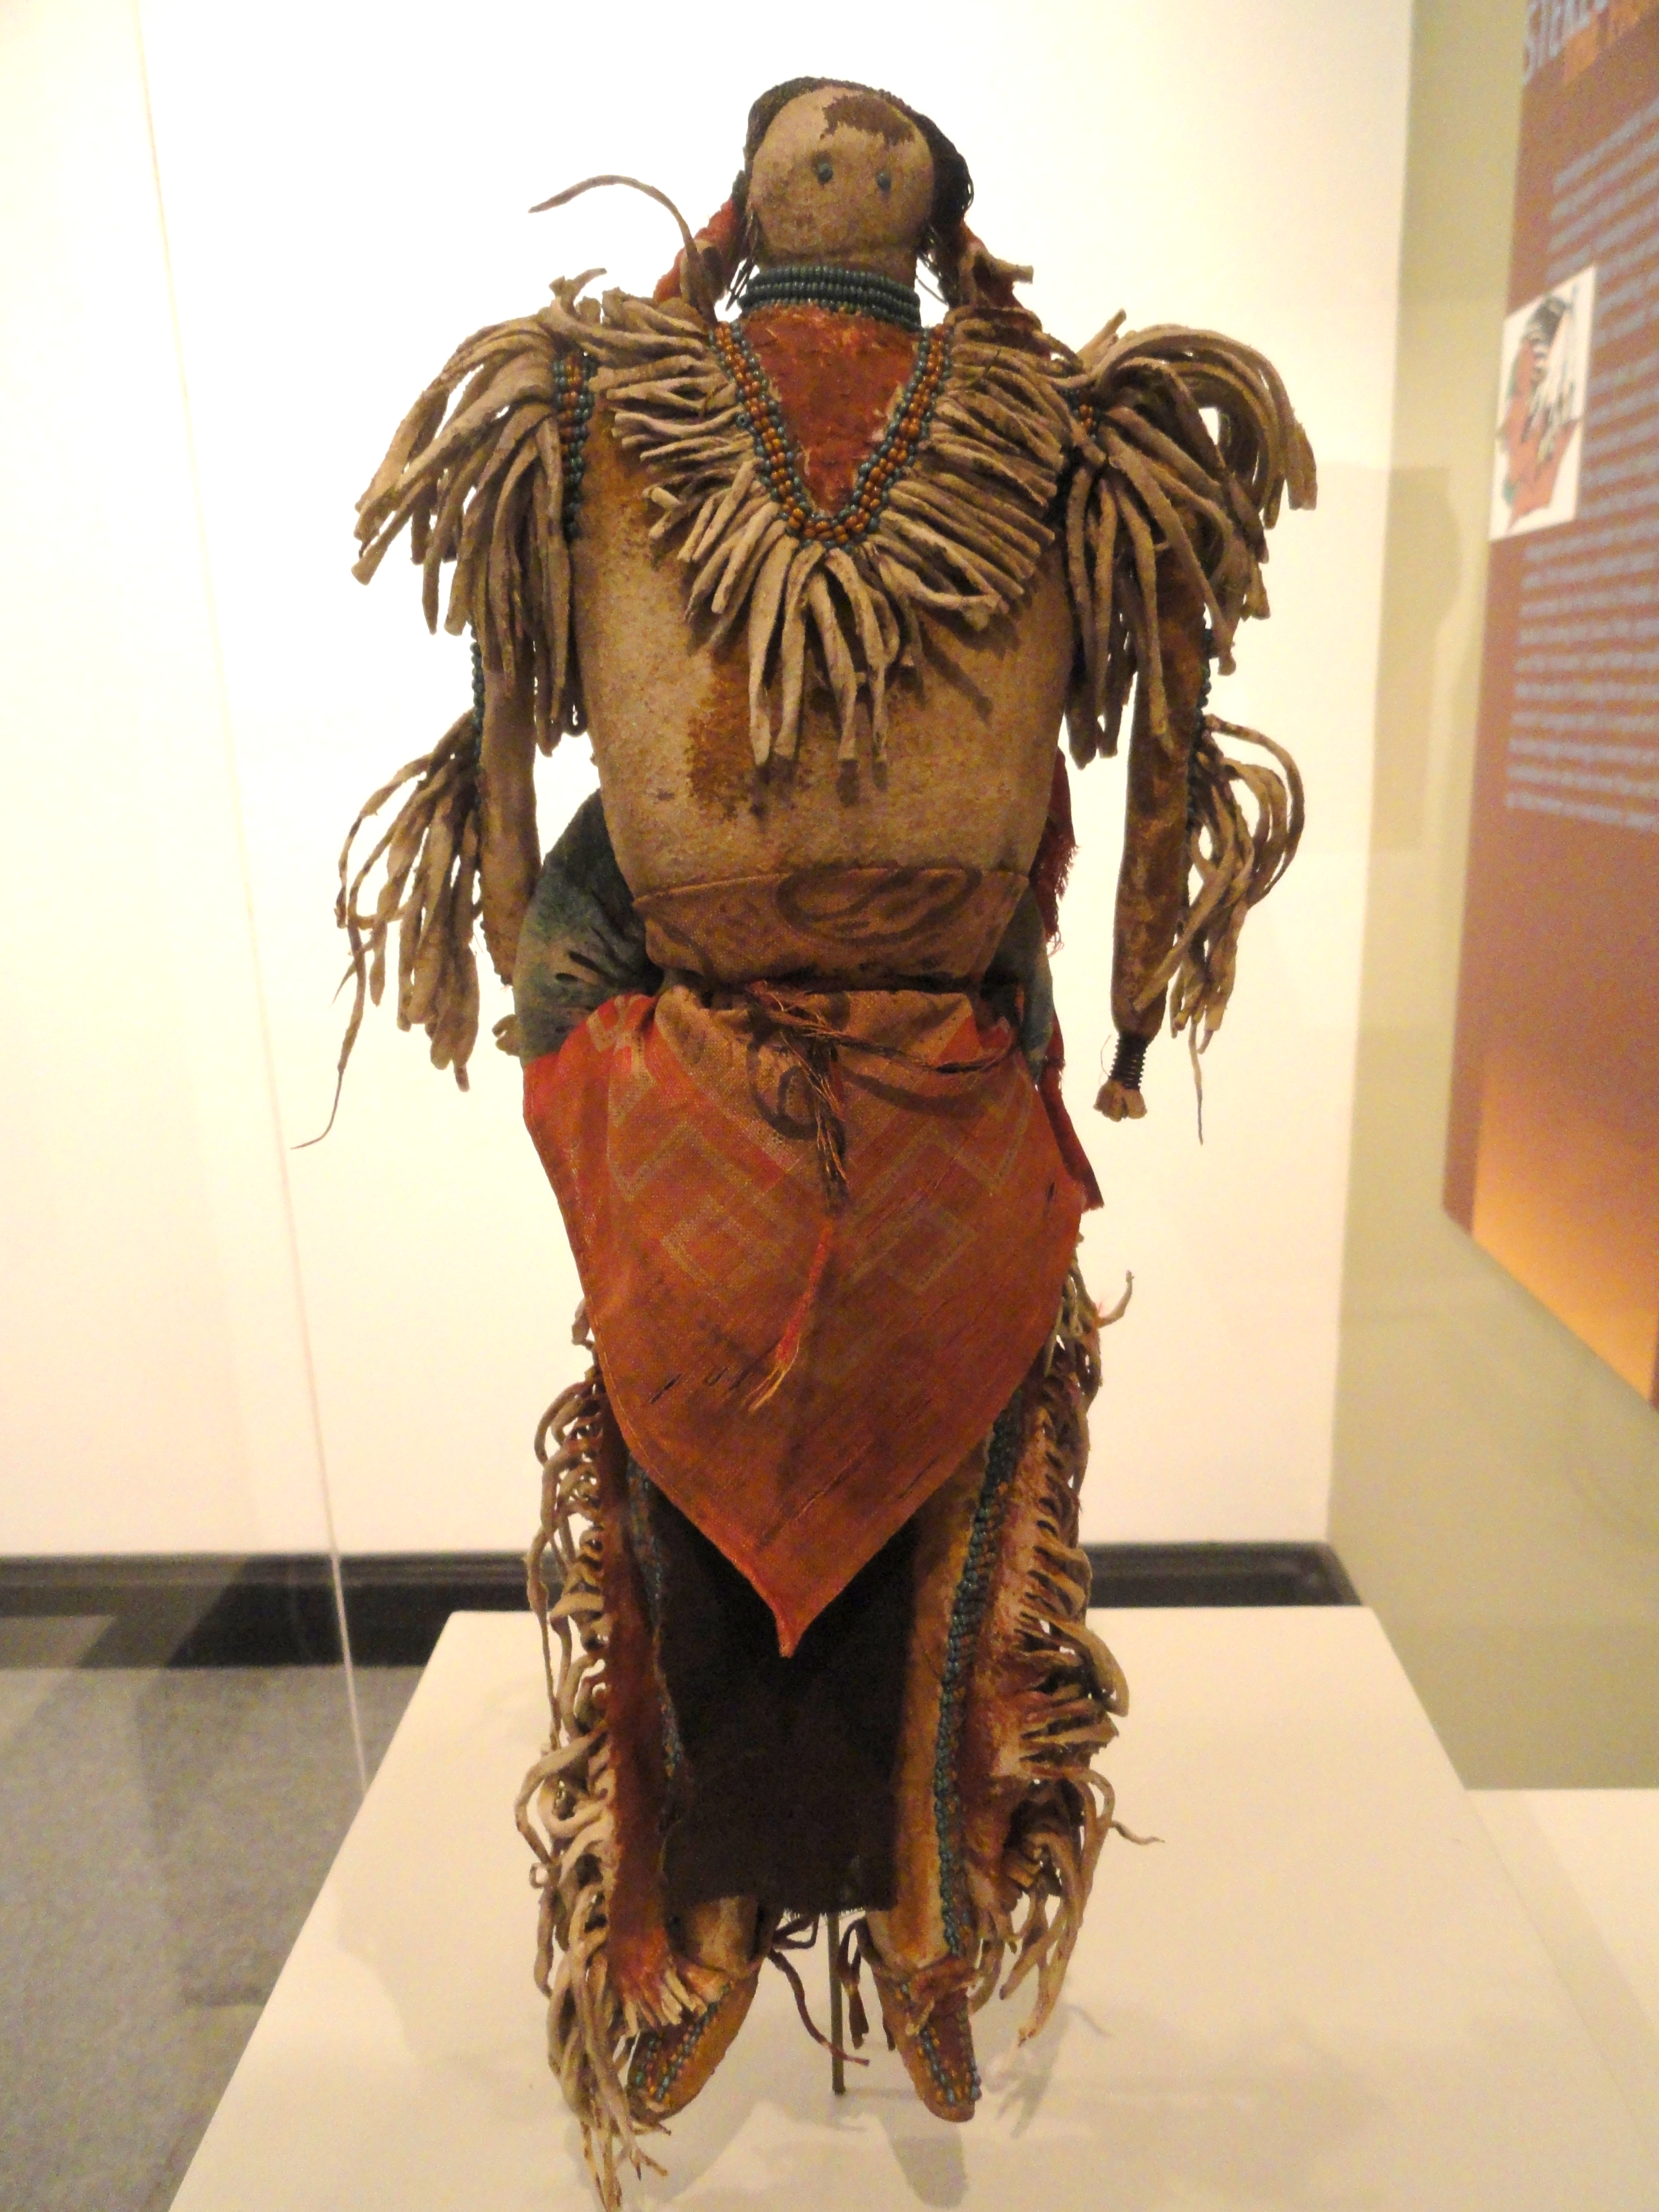 File:Warrior doll, with symbols of Lakota religion ...